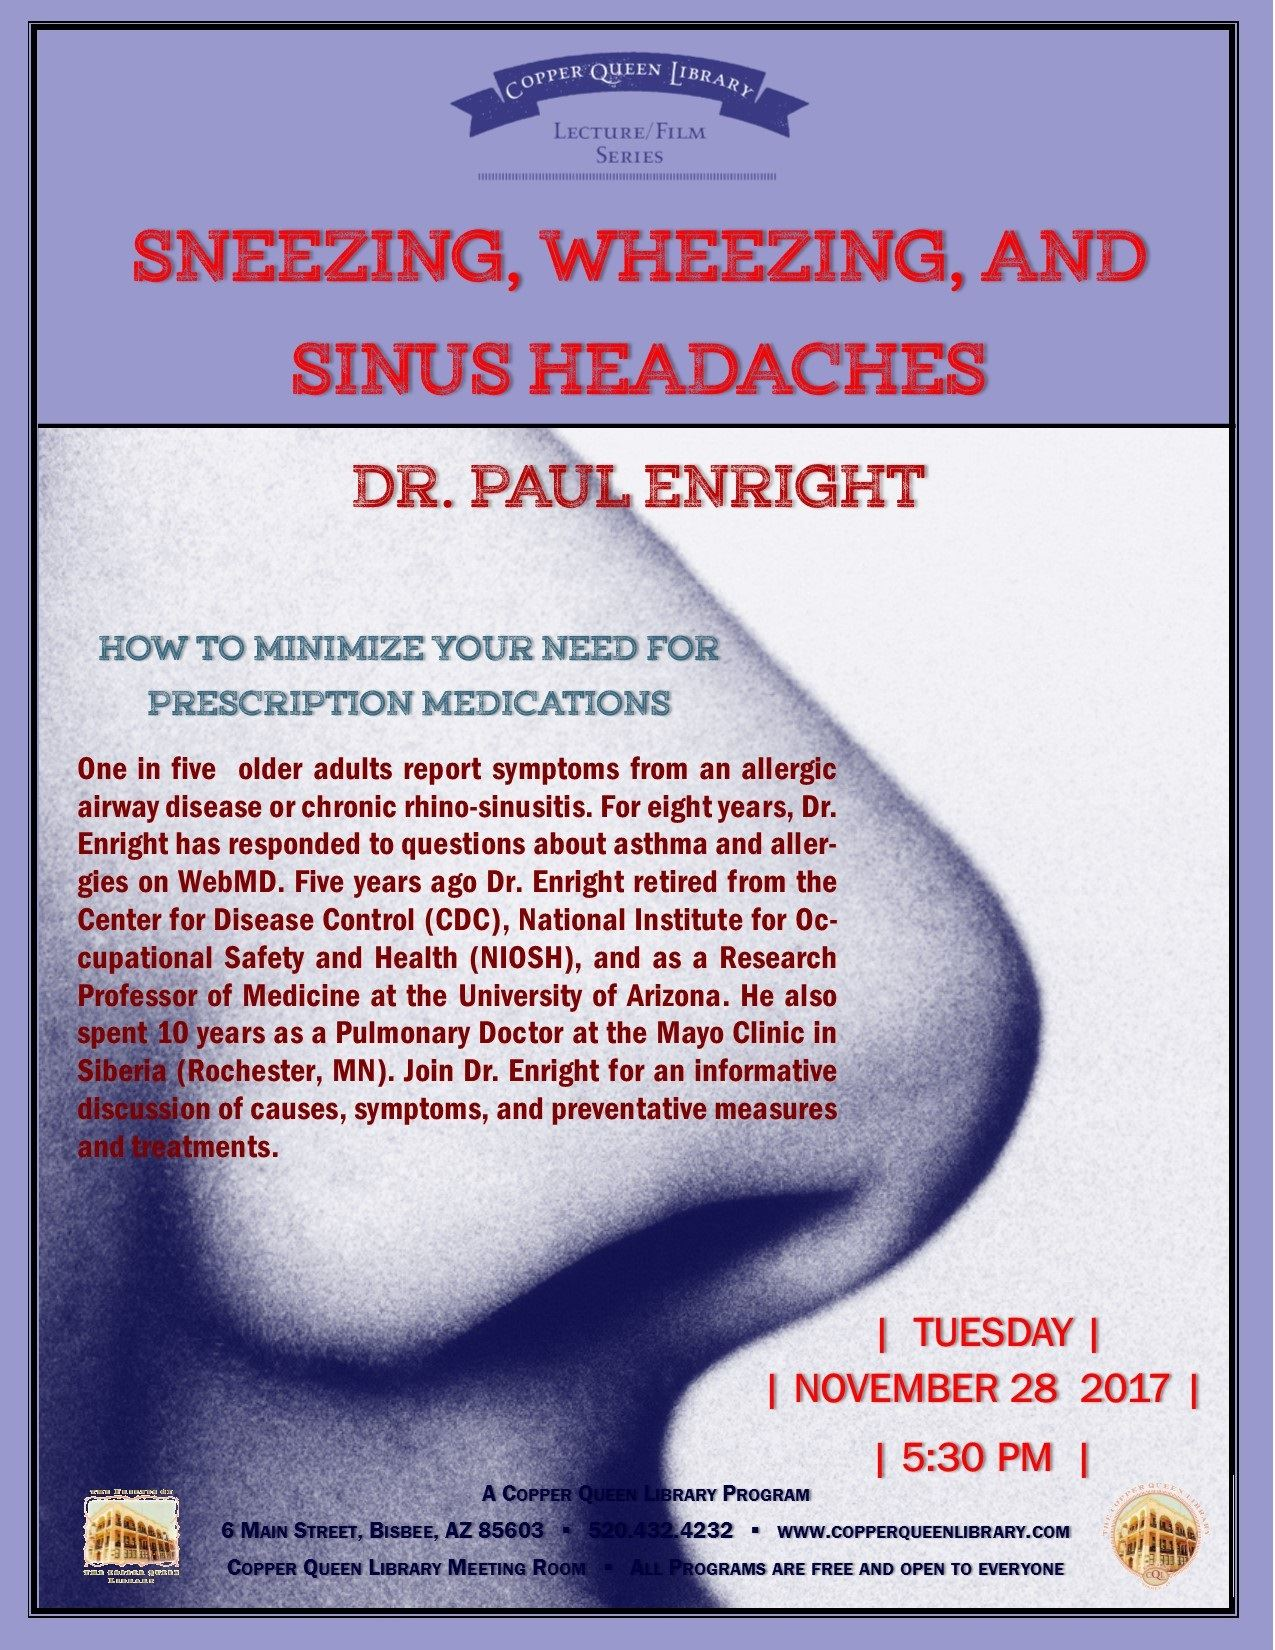 PAUL ENRIGHT SNEEZING WHEEZING 11.28.2017 POSTER 8.5 X 11